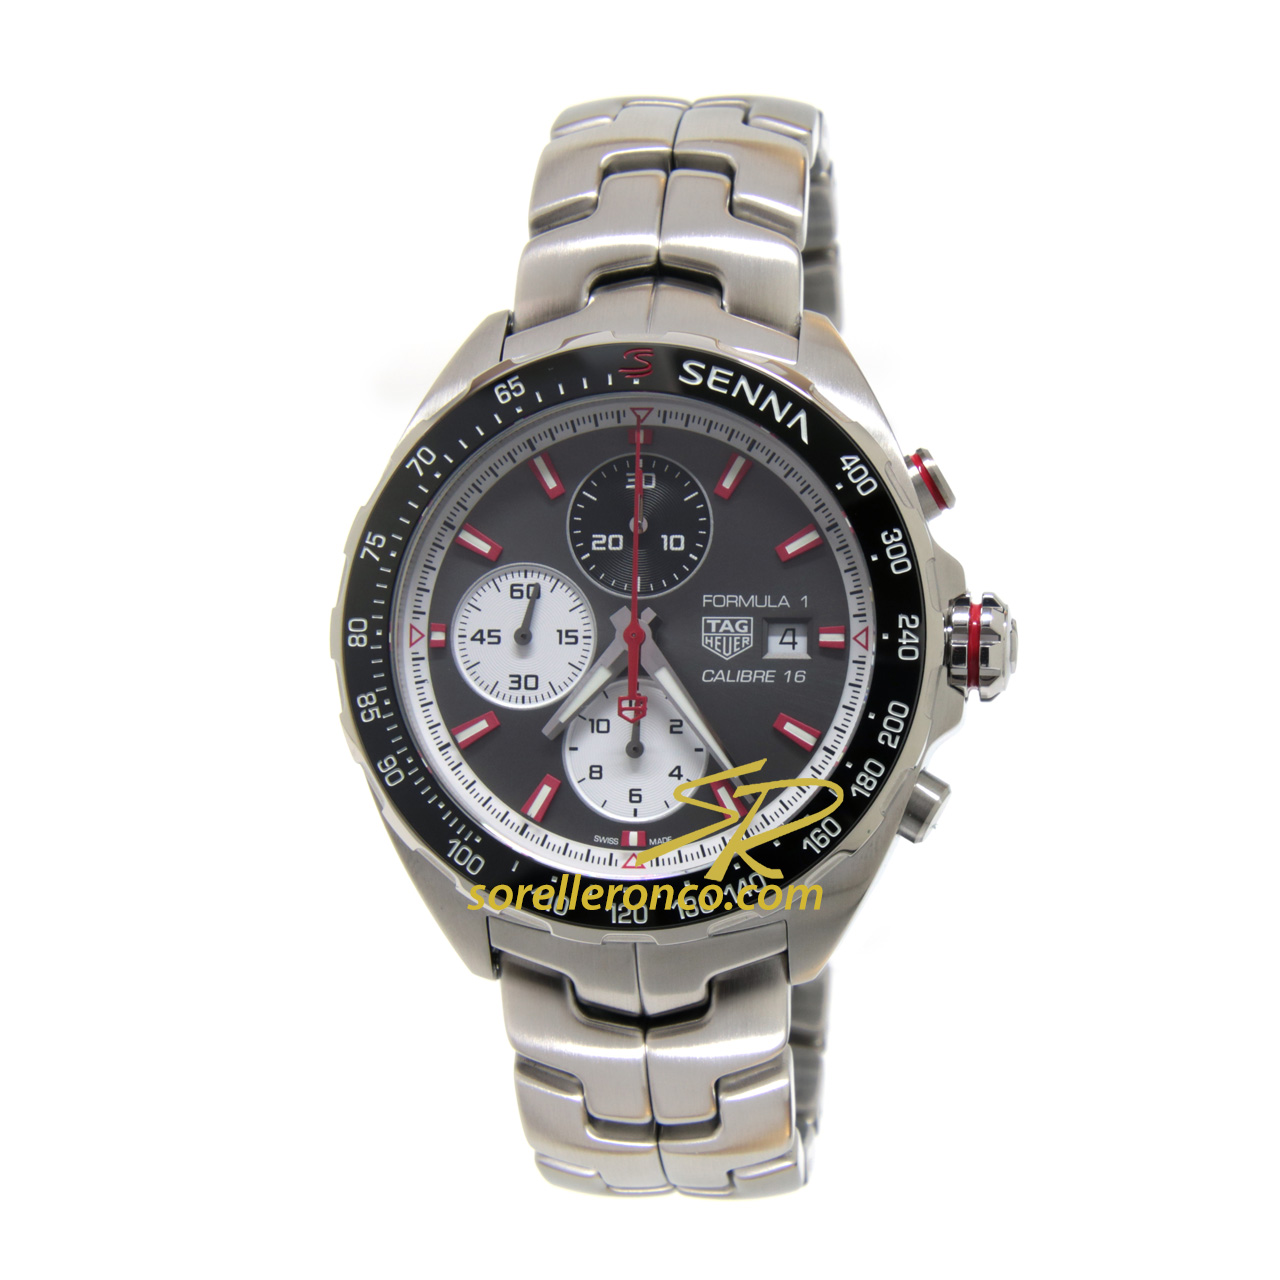 Senna Formula 1 Chrono Calibre 16 Limited Edition